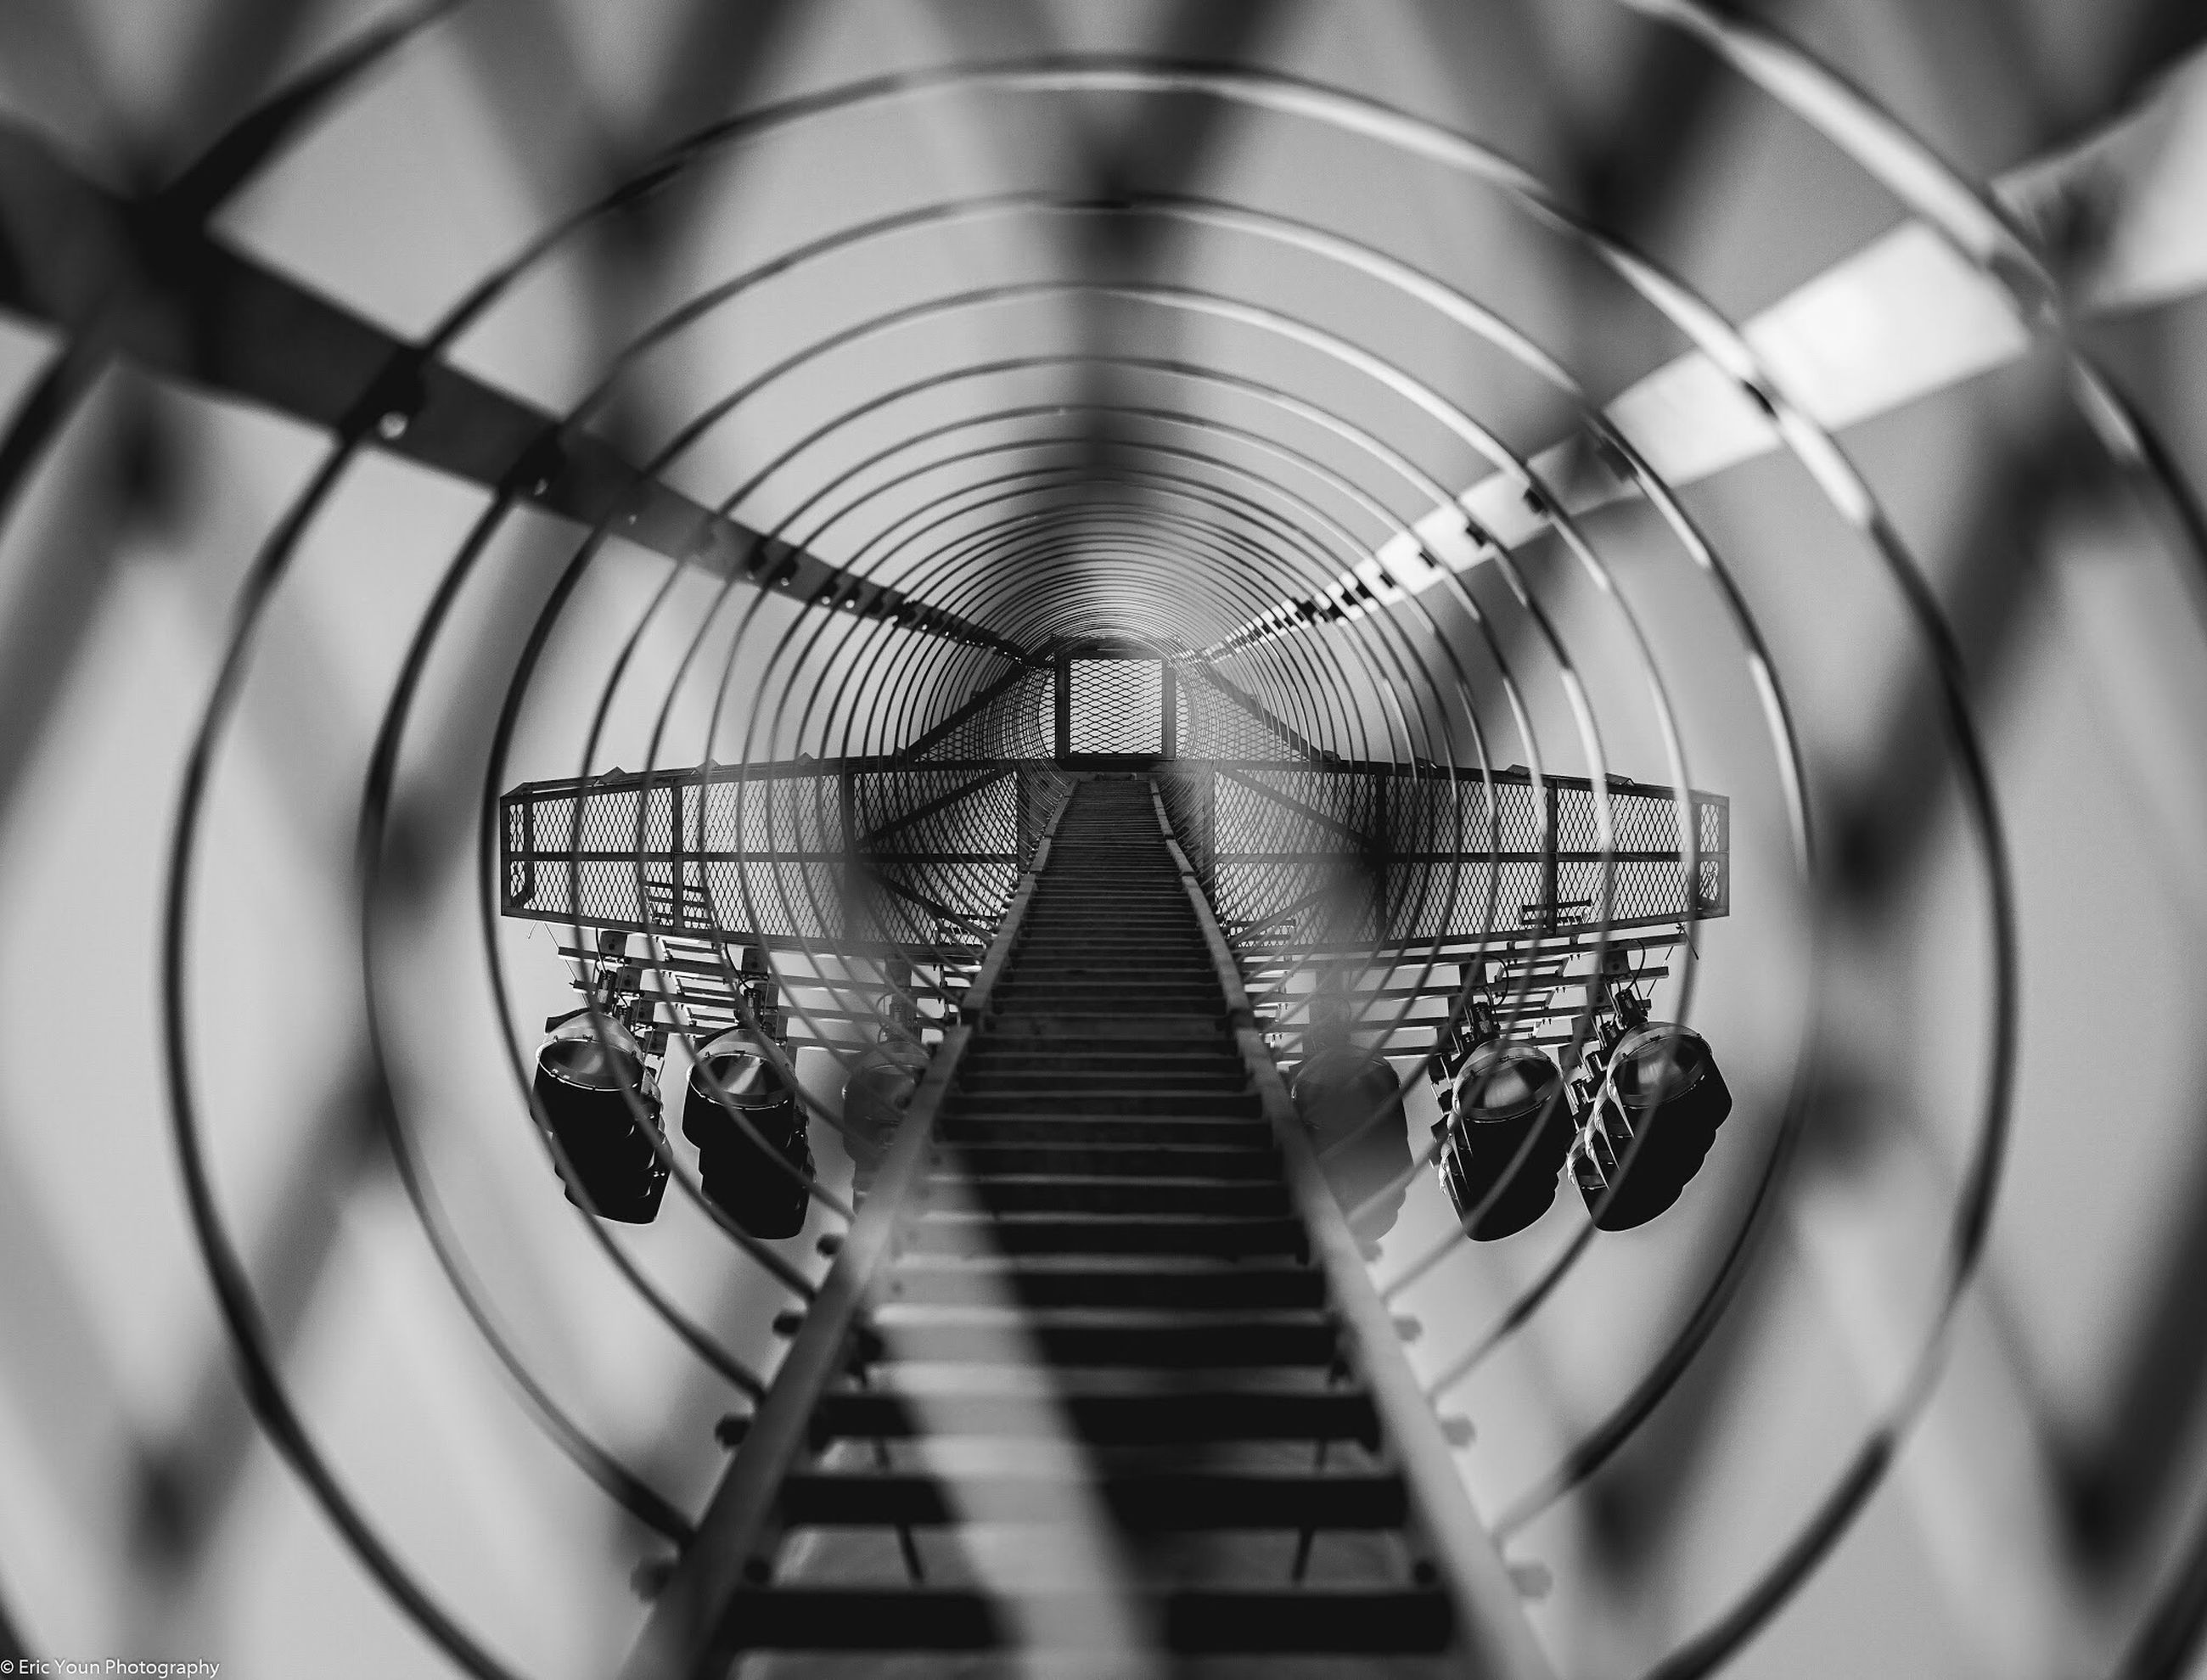 steps, indoors, steps and staircases, staircase, railing, metal, high angle view, built structure, architecture, pattern, escalator, stairs, spiral, the way forward, diminishing perspective, spiral staircase, day, no people, low angle view, ceiling